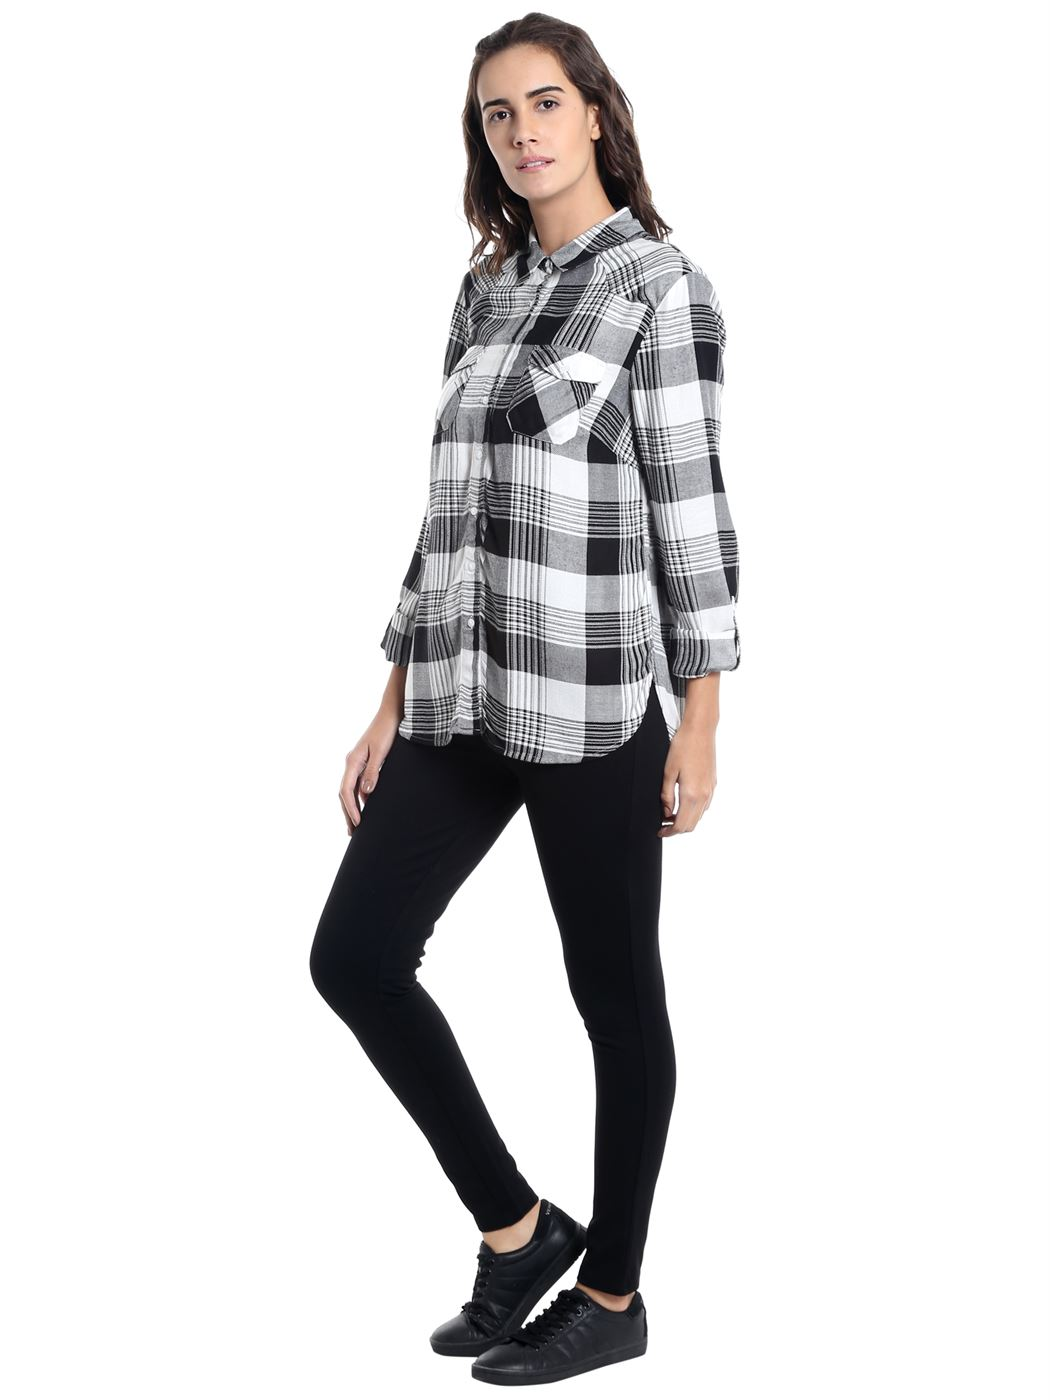 Vero Moda Women Casual Wear Checkered Shirt